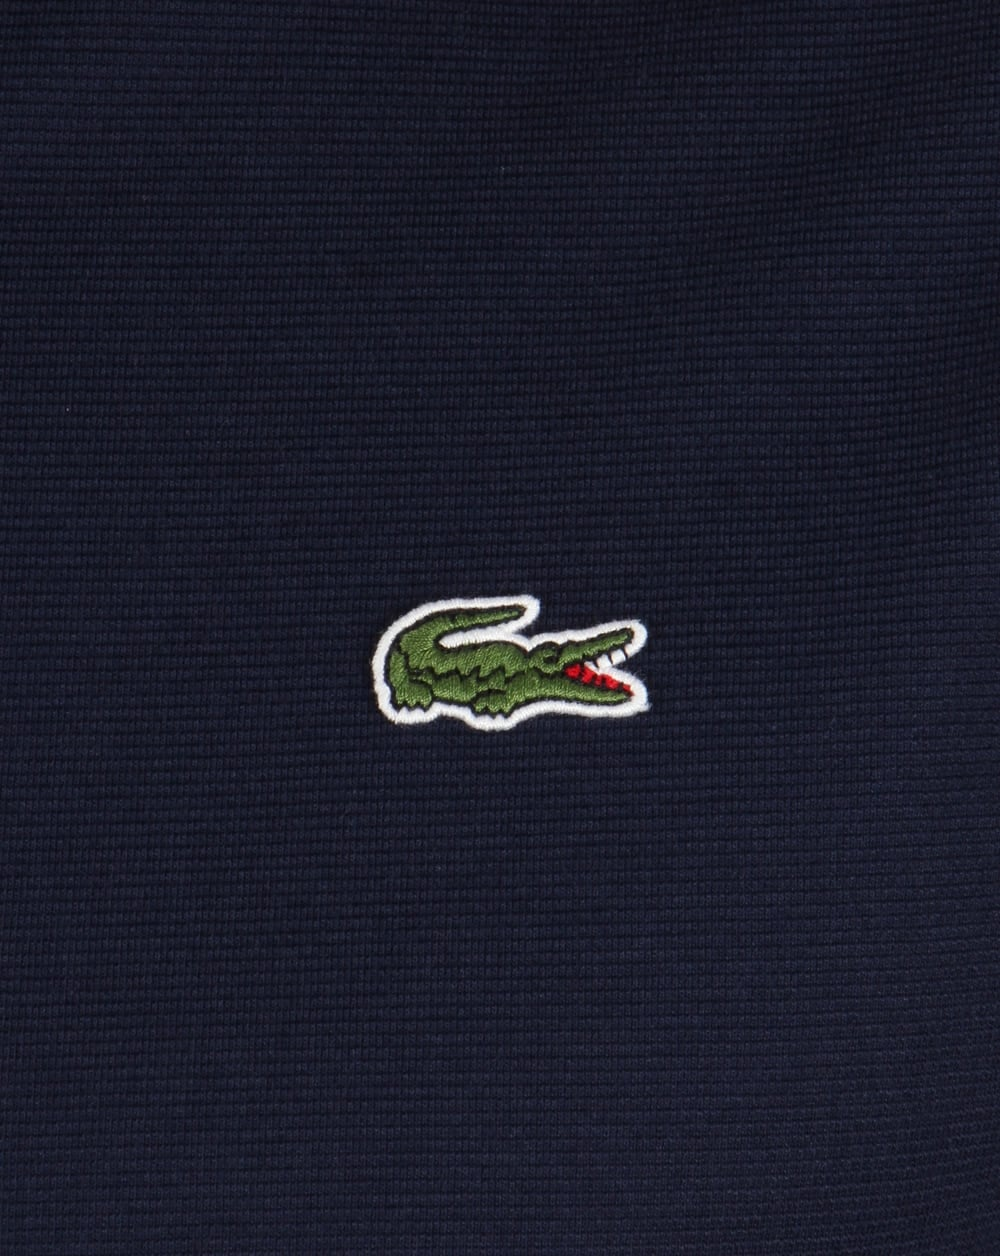 Lacoste Polo Shirt Navy Short Sleeve Old Skool Retro